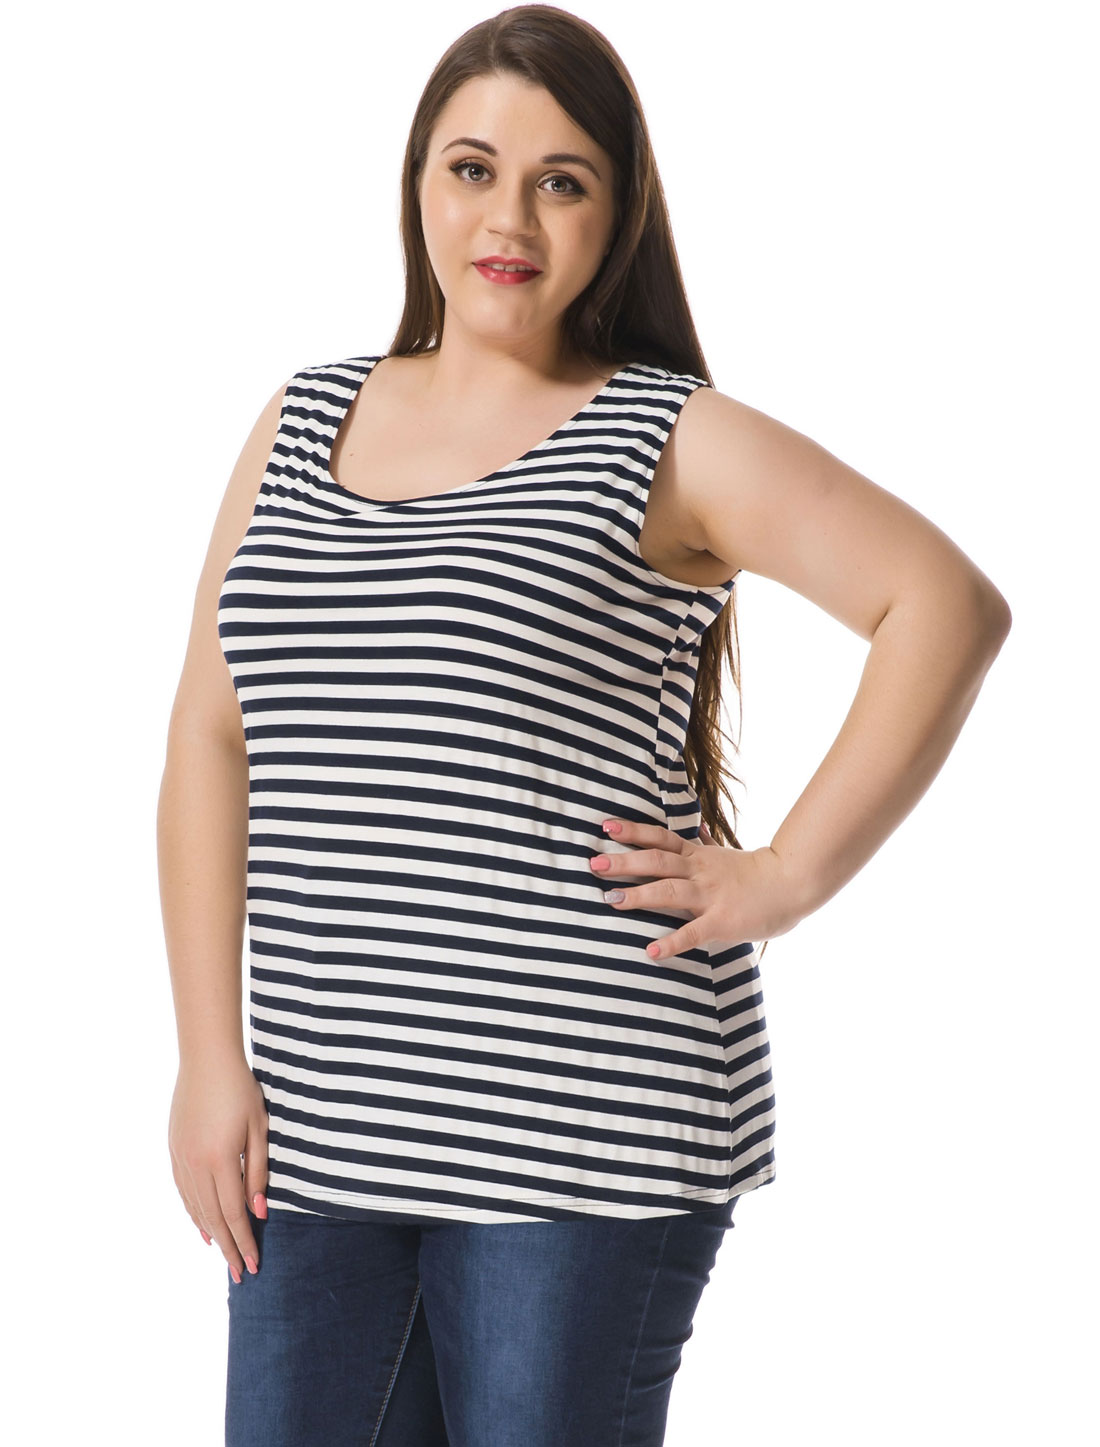 Women Plus Size Striped Top w Cut Out Bowknot Back Blue White 3X